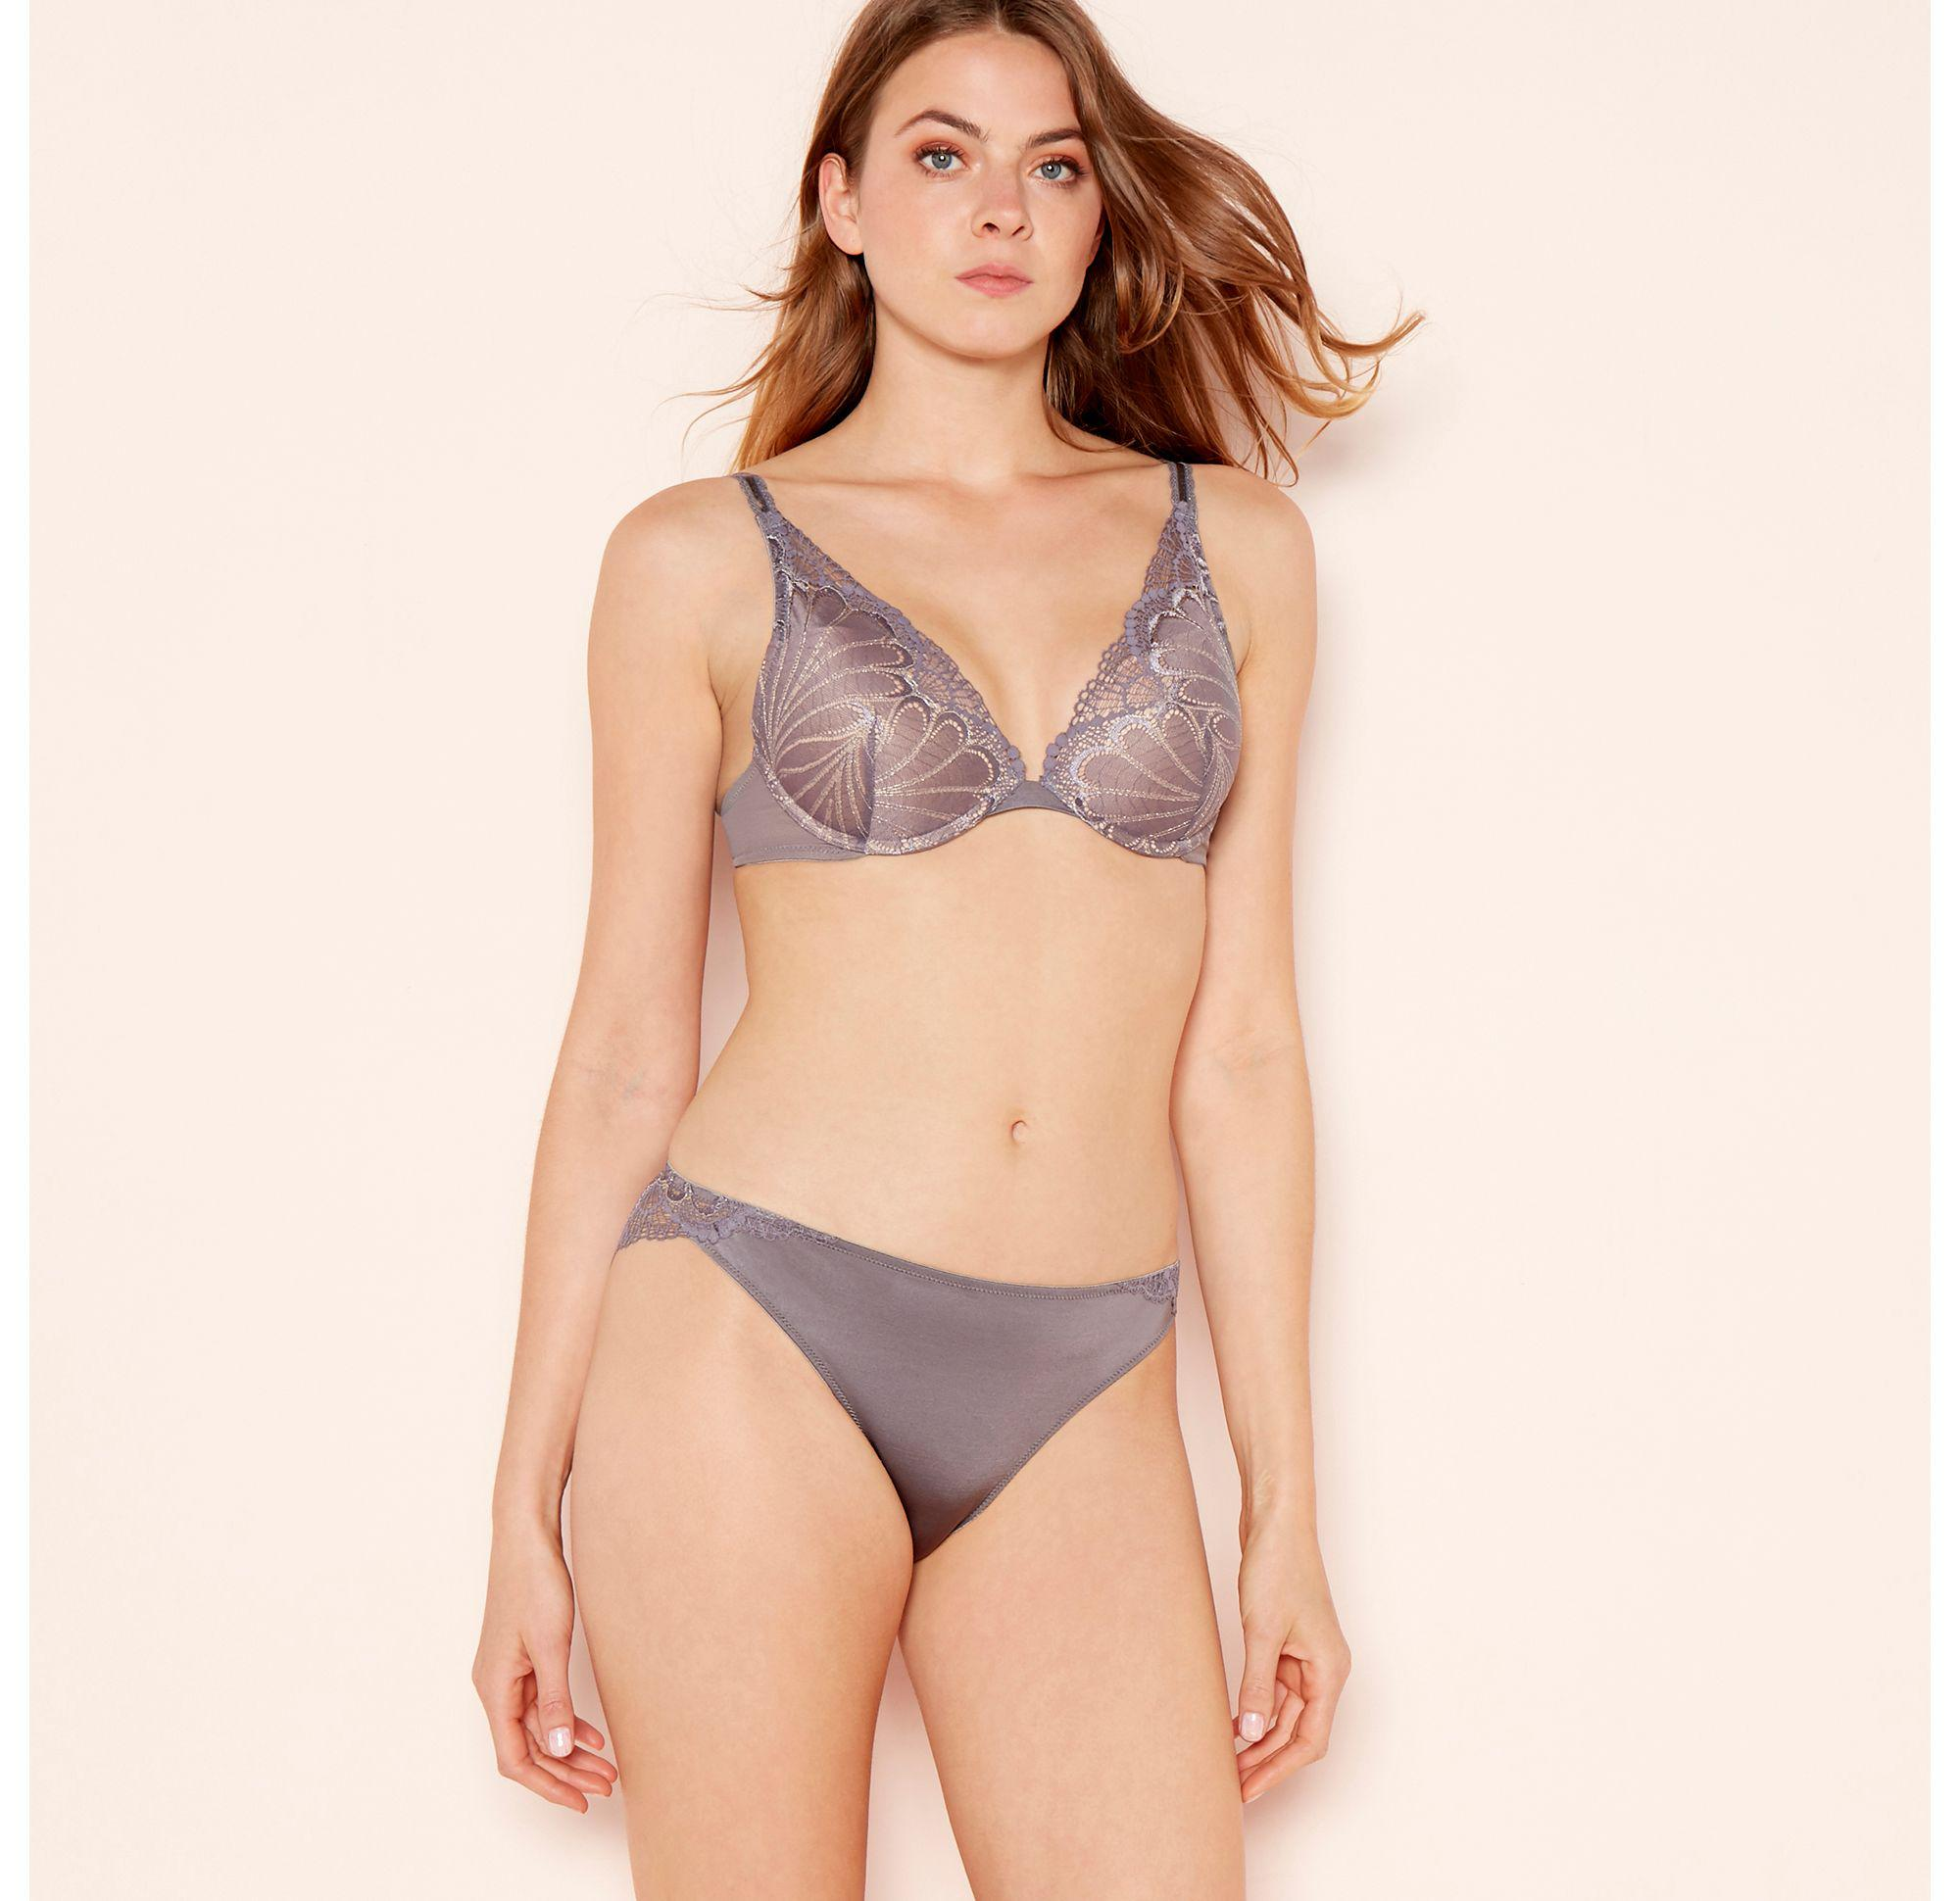 fef92d5ab9 Wonderbra Silver Lace  refined Glamour  Underwired Padded Push-up ...